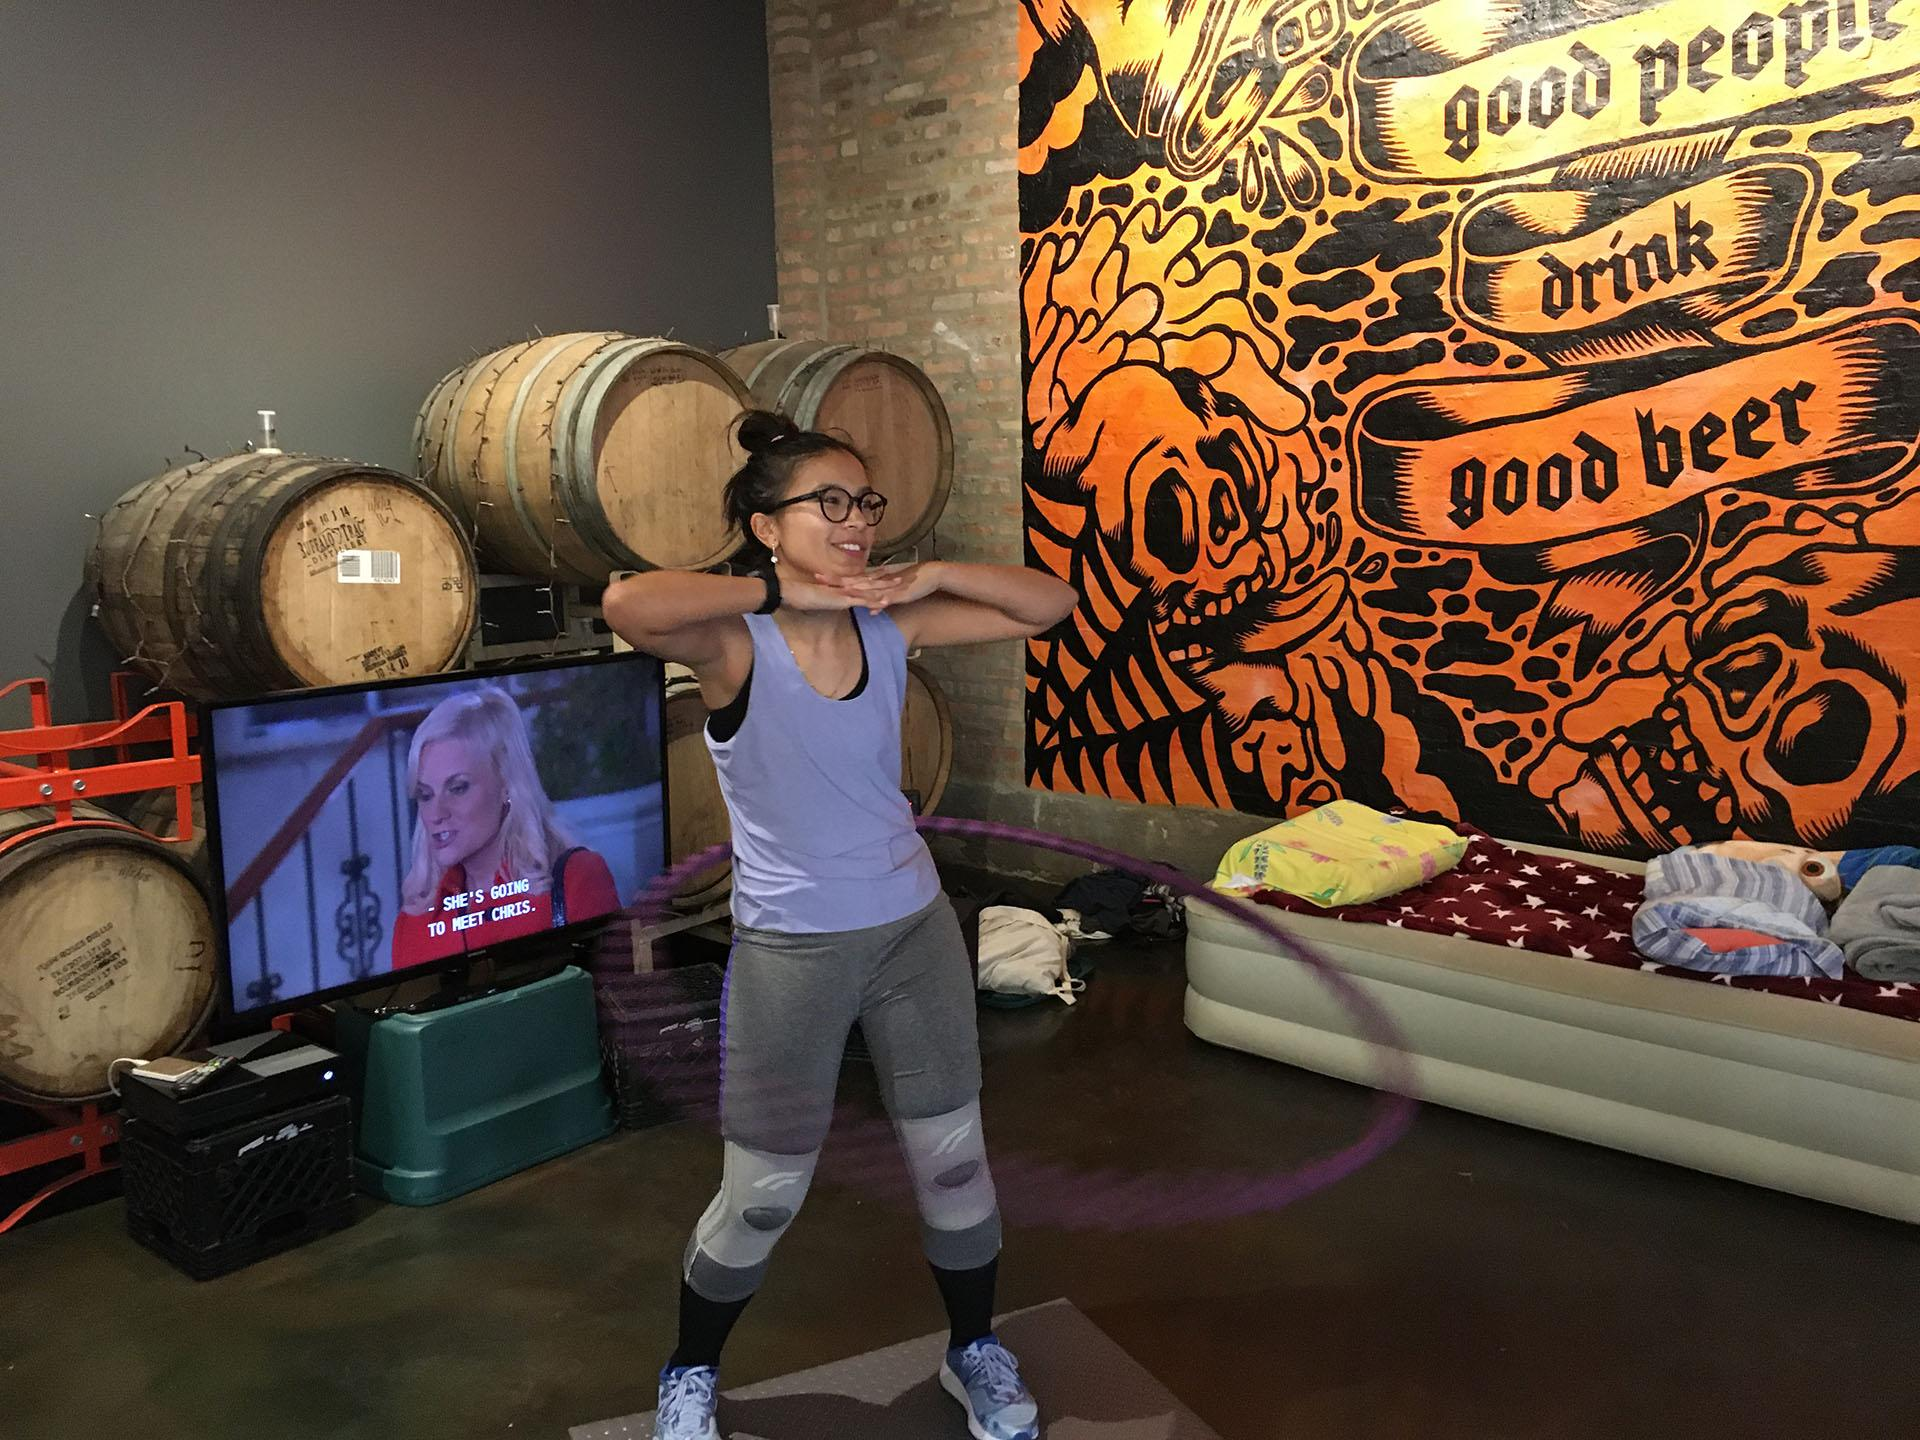 Wicker Park resident Jenny Doan poses for a picture Saturday, Nov. 23, 2019, as she nears the end of her Guinness World Record attempt for longest marathon hula-hooping session. (Kristen Thometz / WTTW News)